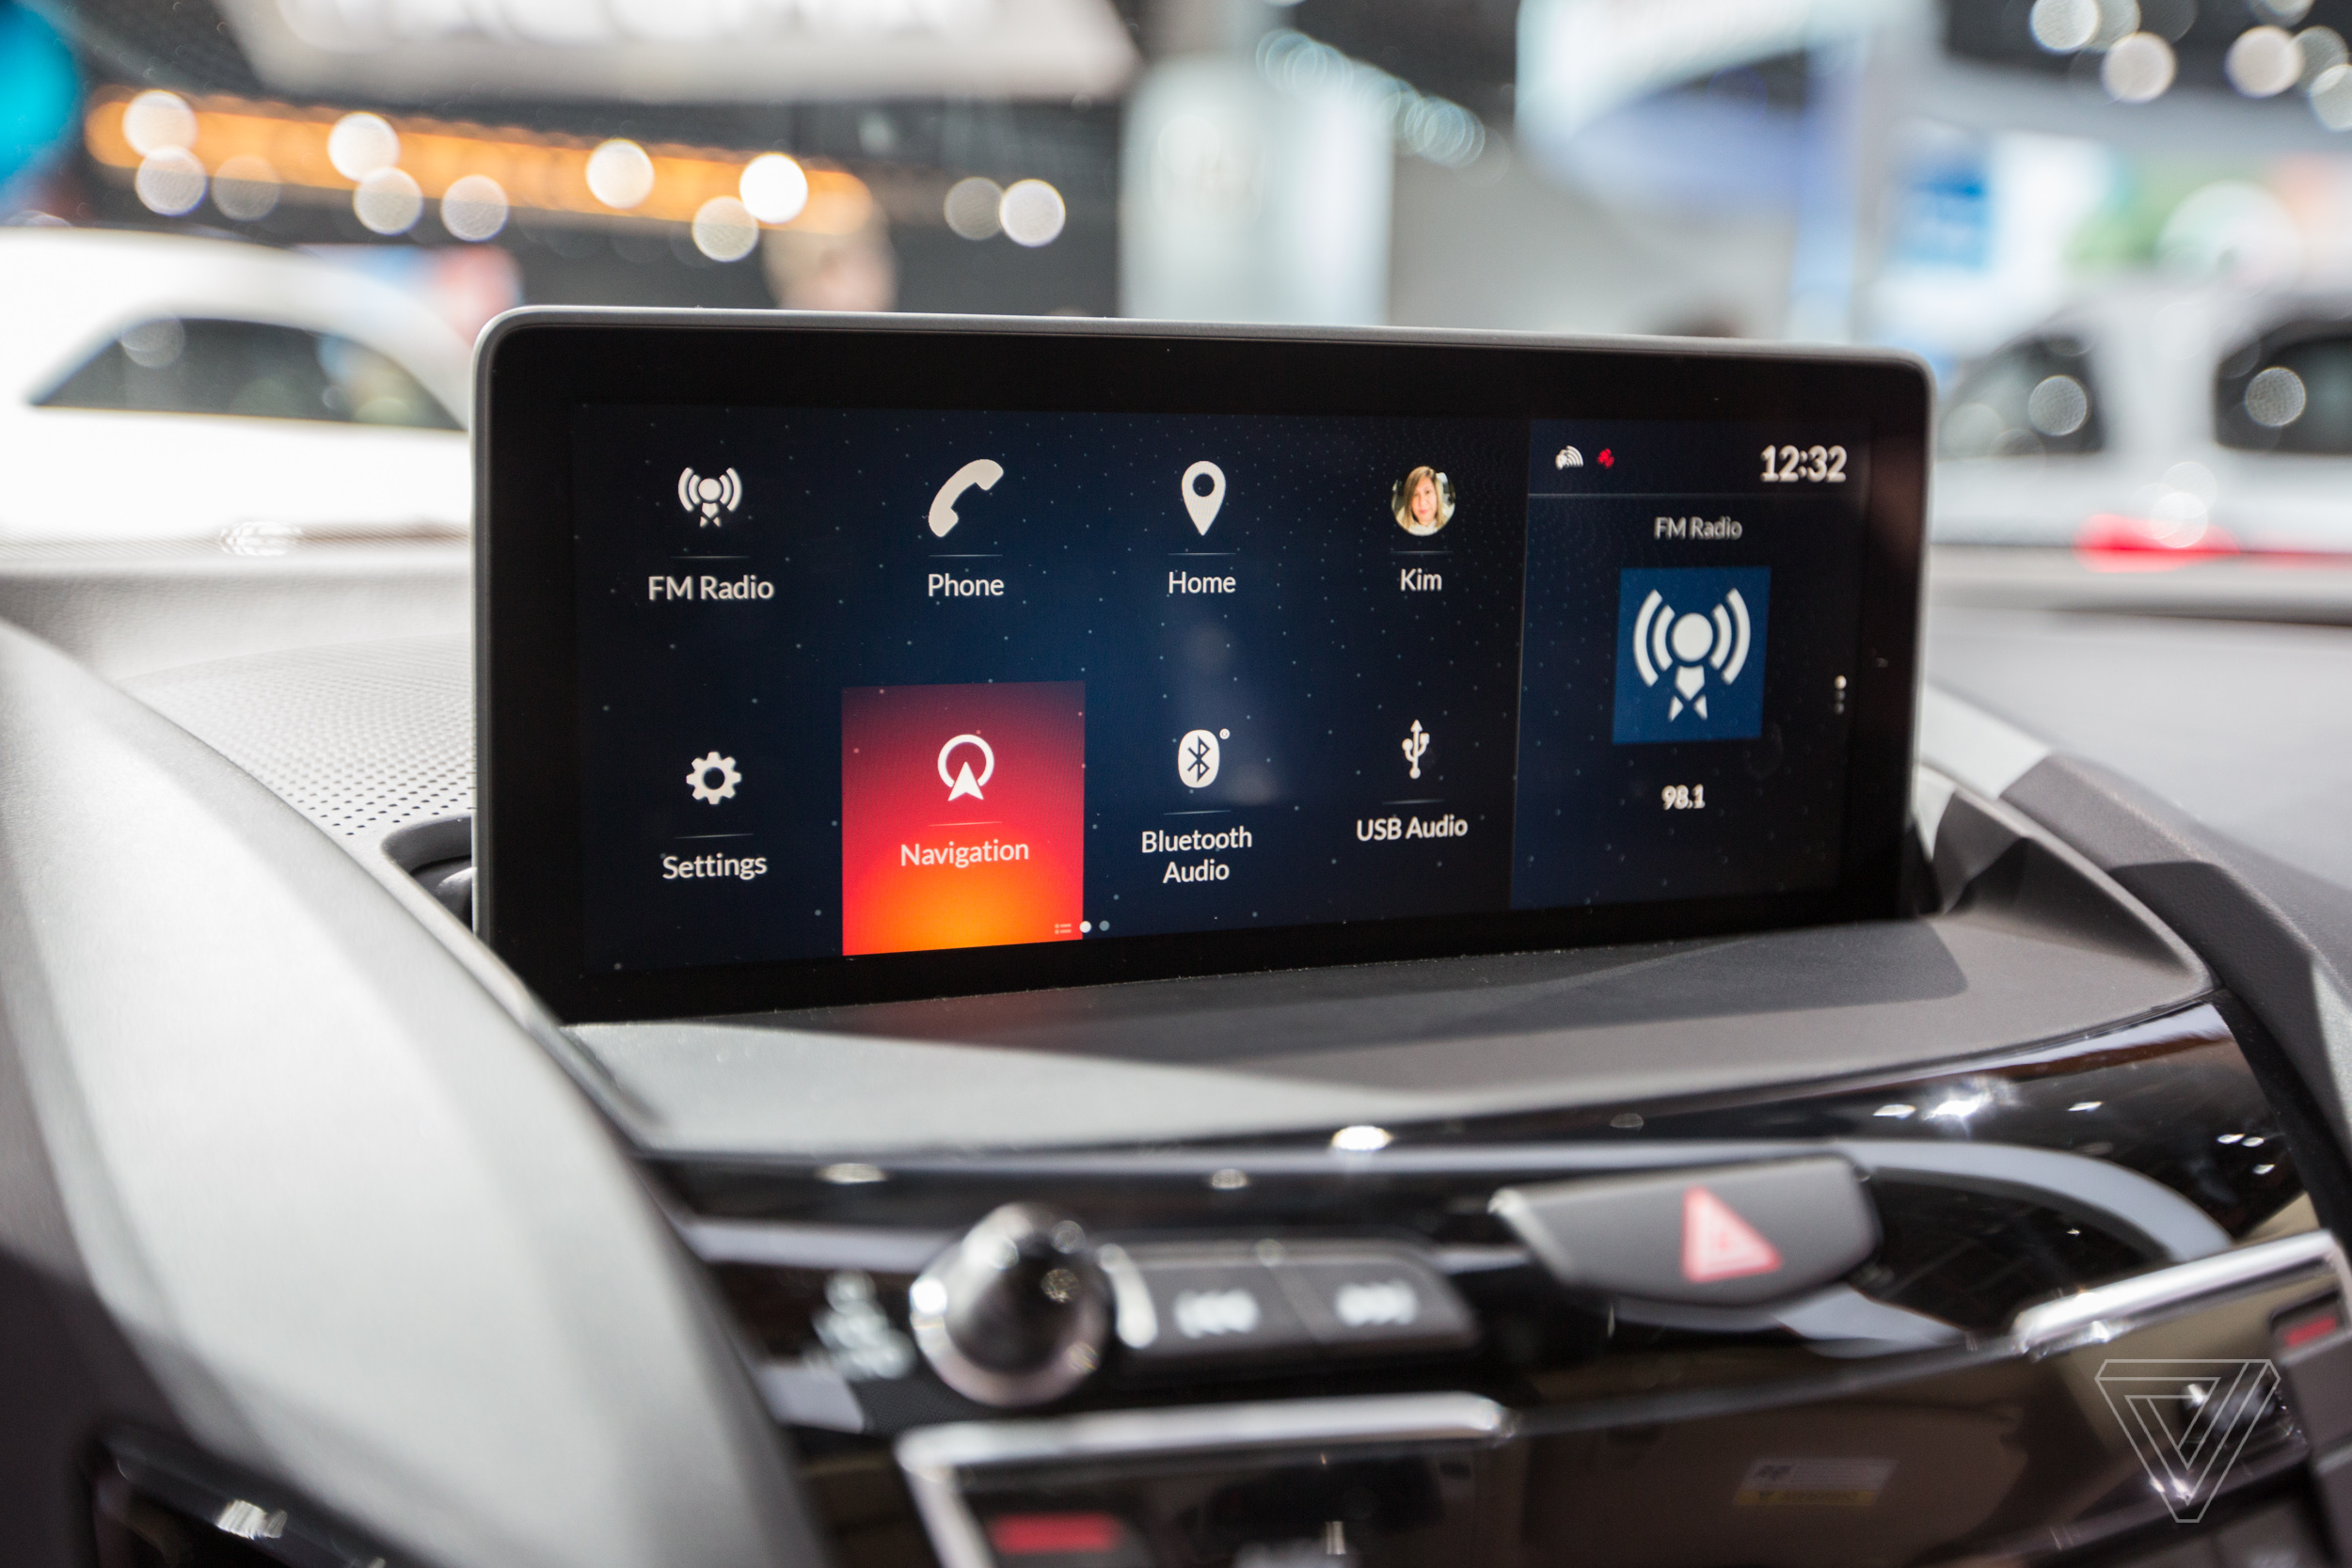 Acura hides a slick Android-based interface in yet another SUV - The Verge